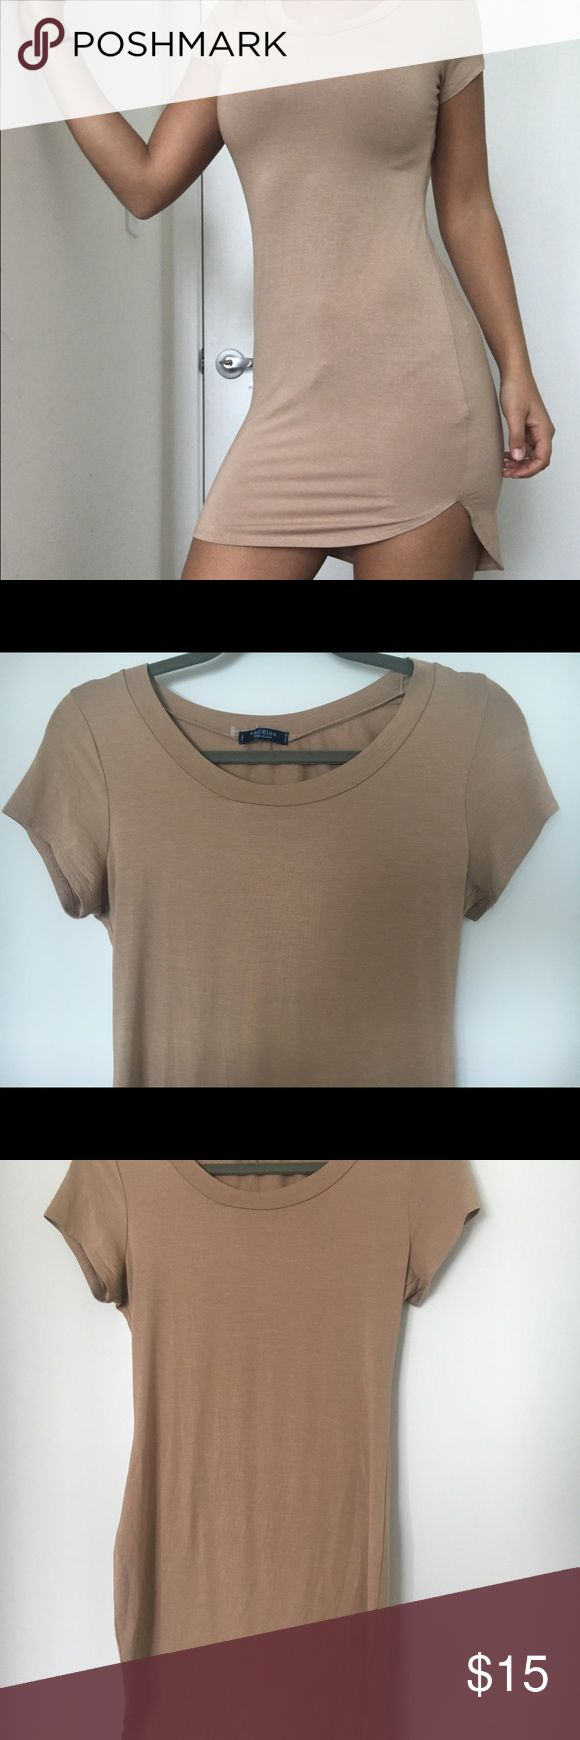 Bodycon camel nude t shirt dress round neck short Thank you for viewing my listing! :)   Let me know if you have any questions! Xx Dresses Mini